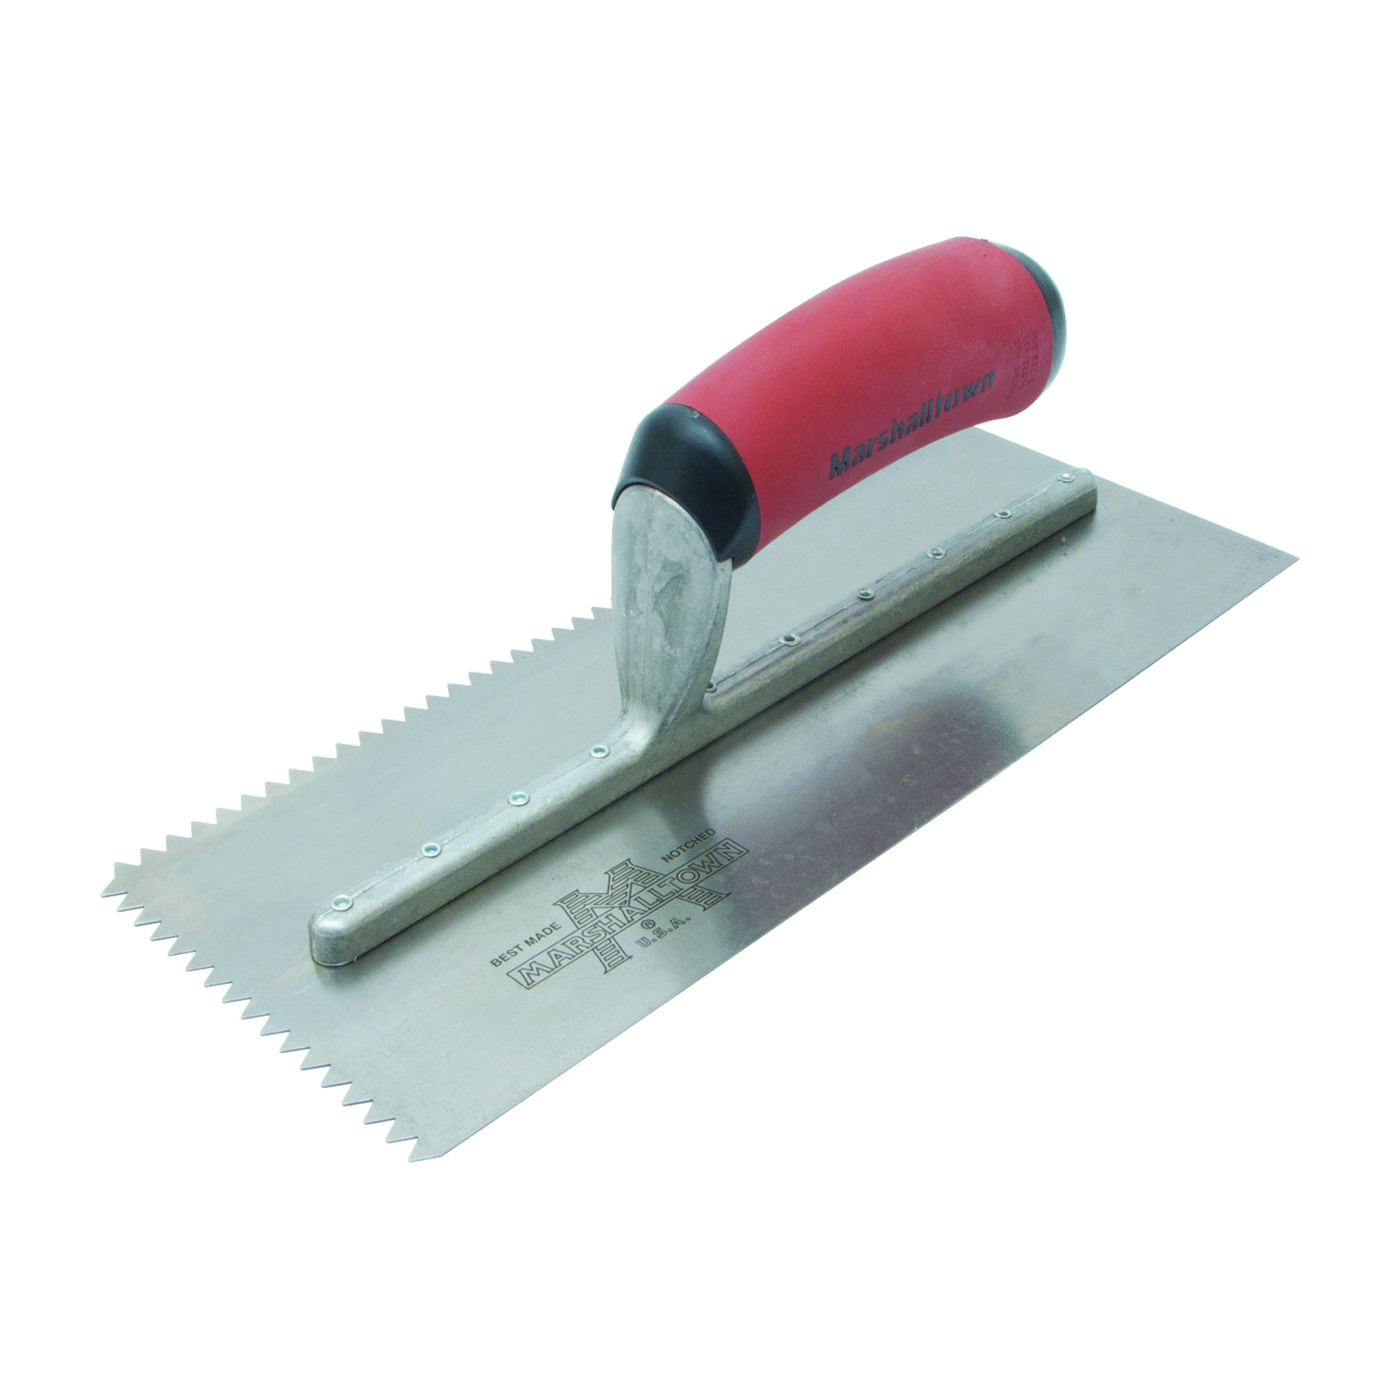 Picture of Marshalltown 780SD Trowel, 11 in L, 4-1/2 in W, V Notch, Curved Handle